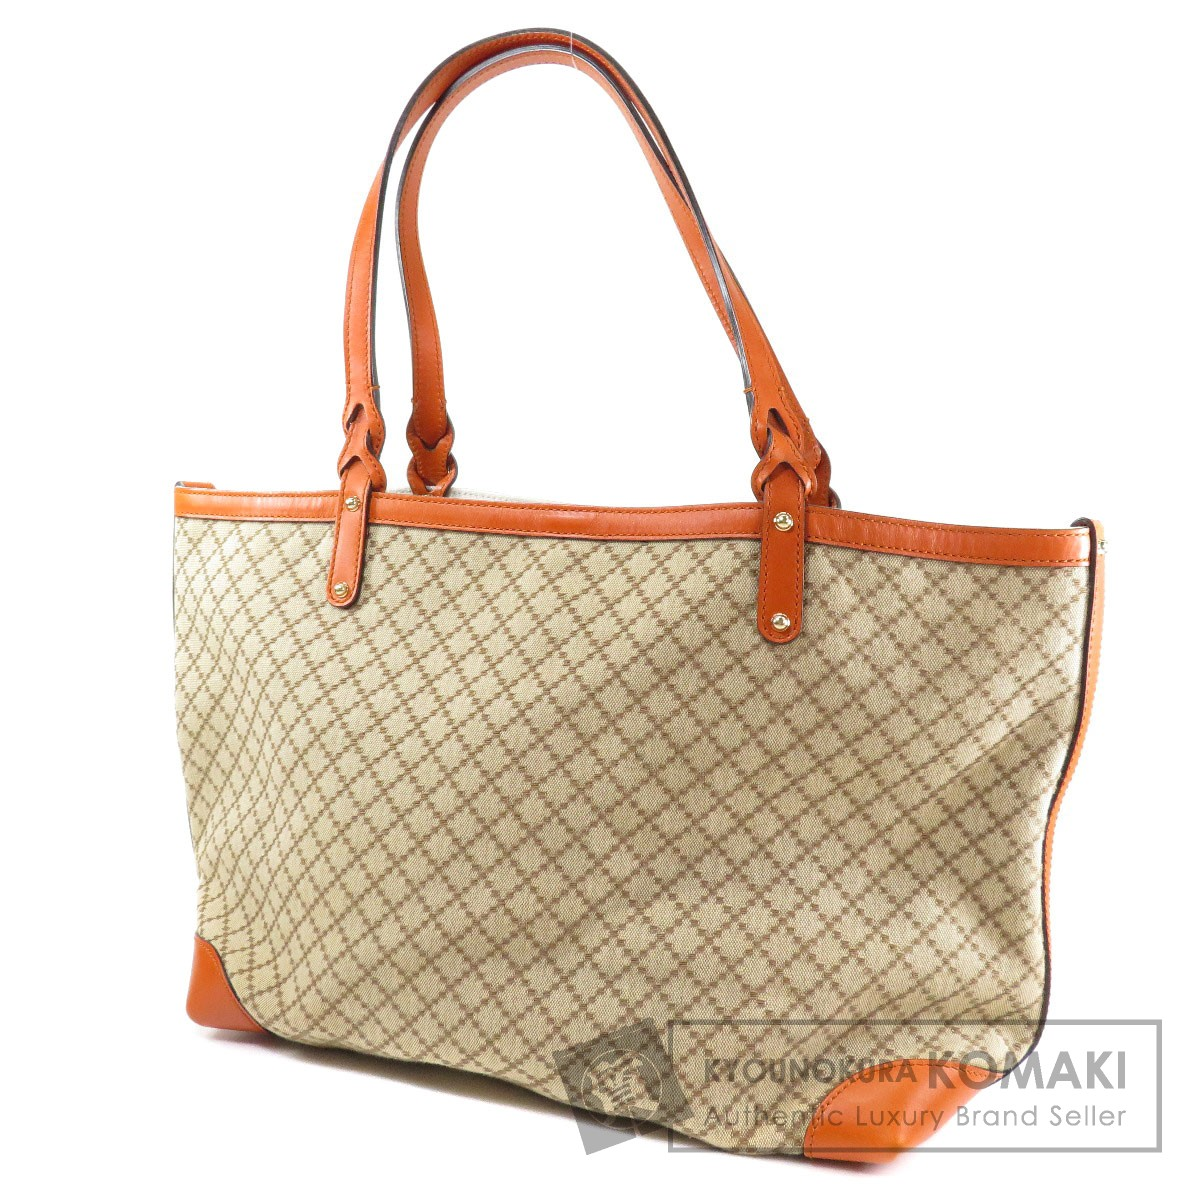 a80589ee97fa GUCCI 247209 520981 ディアマンテ トートバッグ レディース 【中古】【グッチ】 キャンバス/レザー-トートバッグ